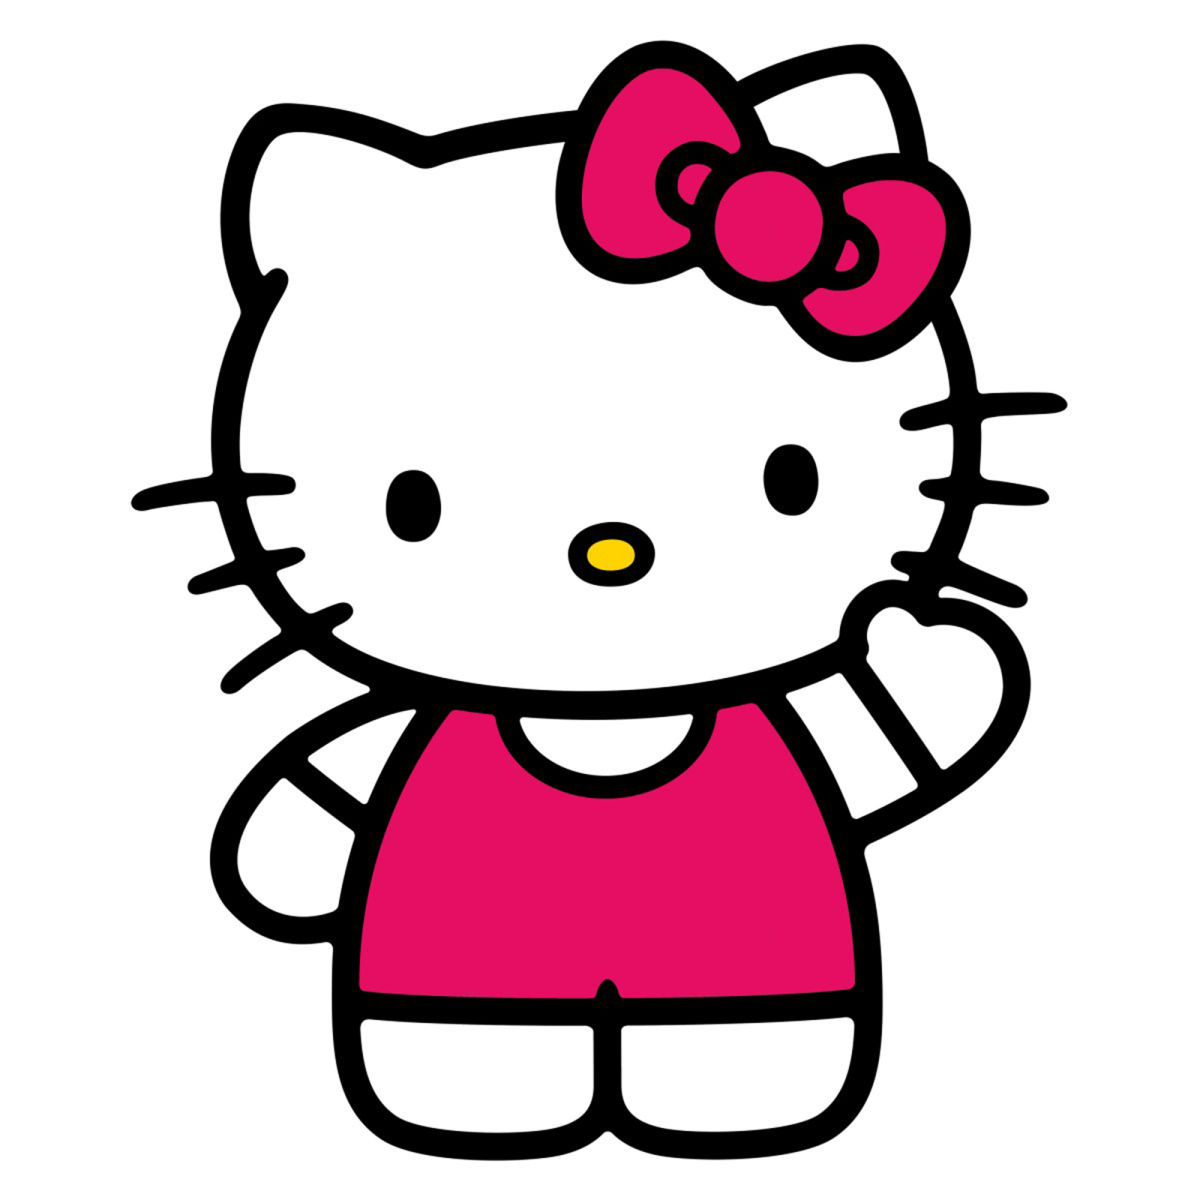 stokes-hello-kitty2-1200